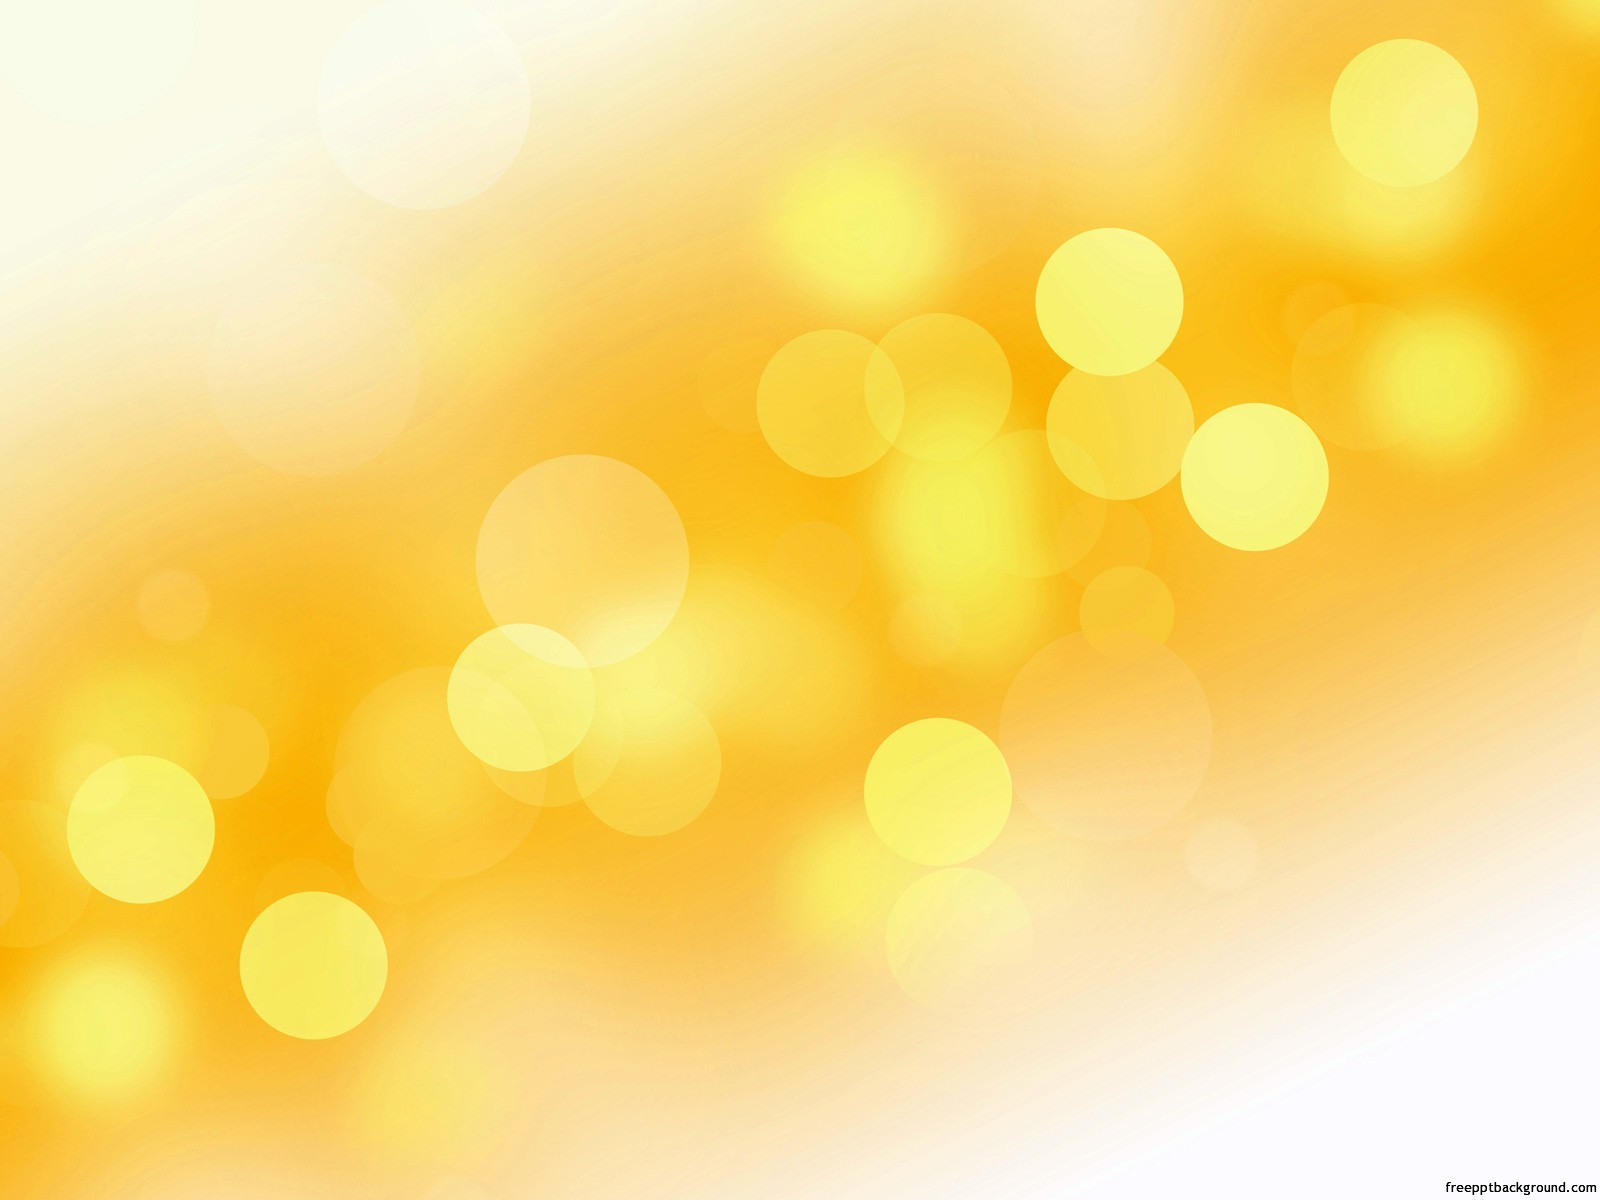 gradient yellow orange white bubbles abstract free ppt backgrounds